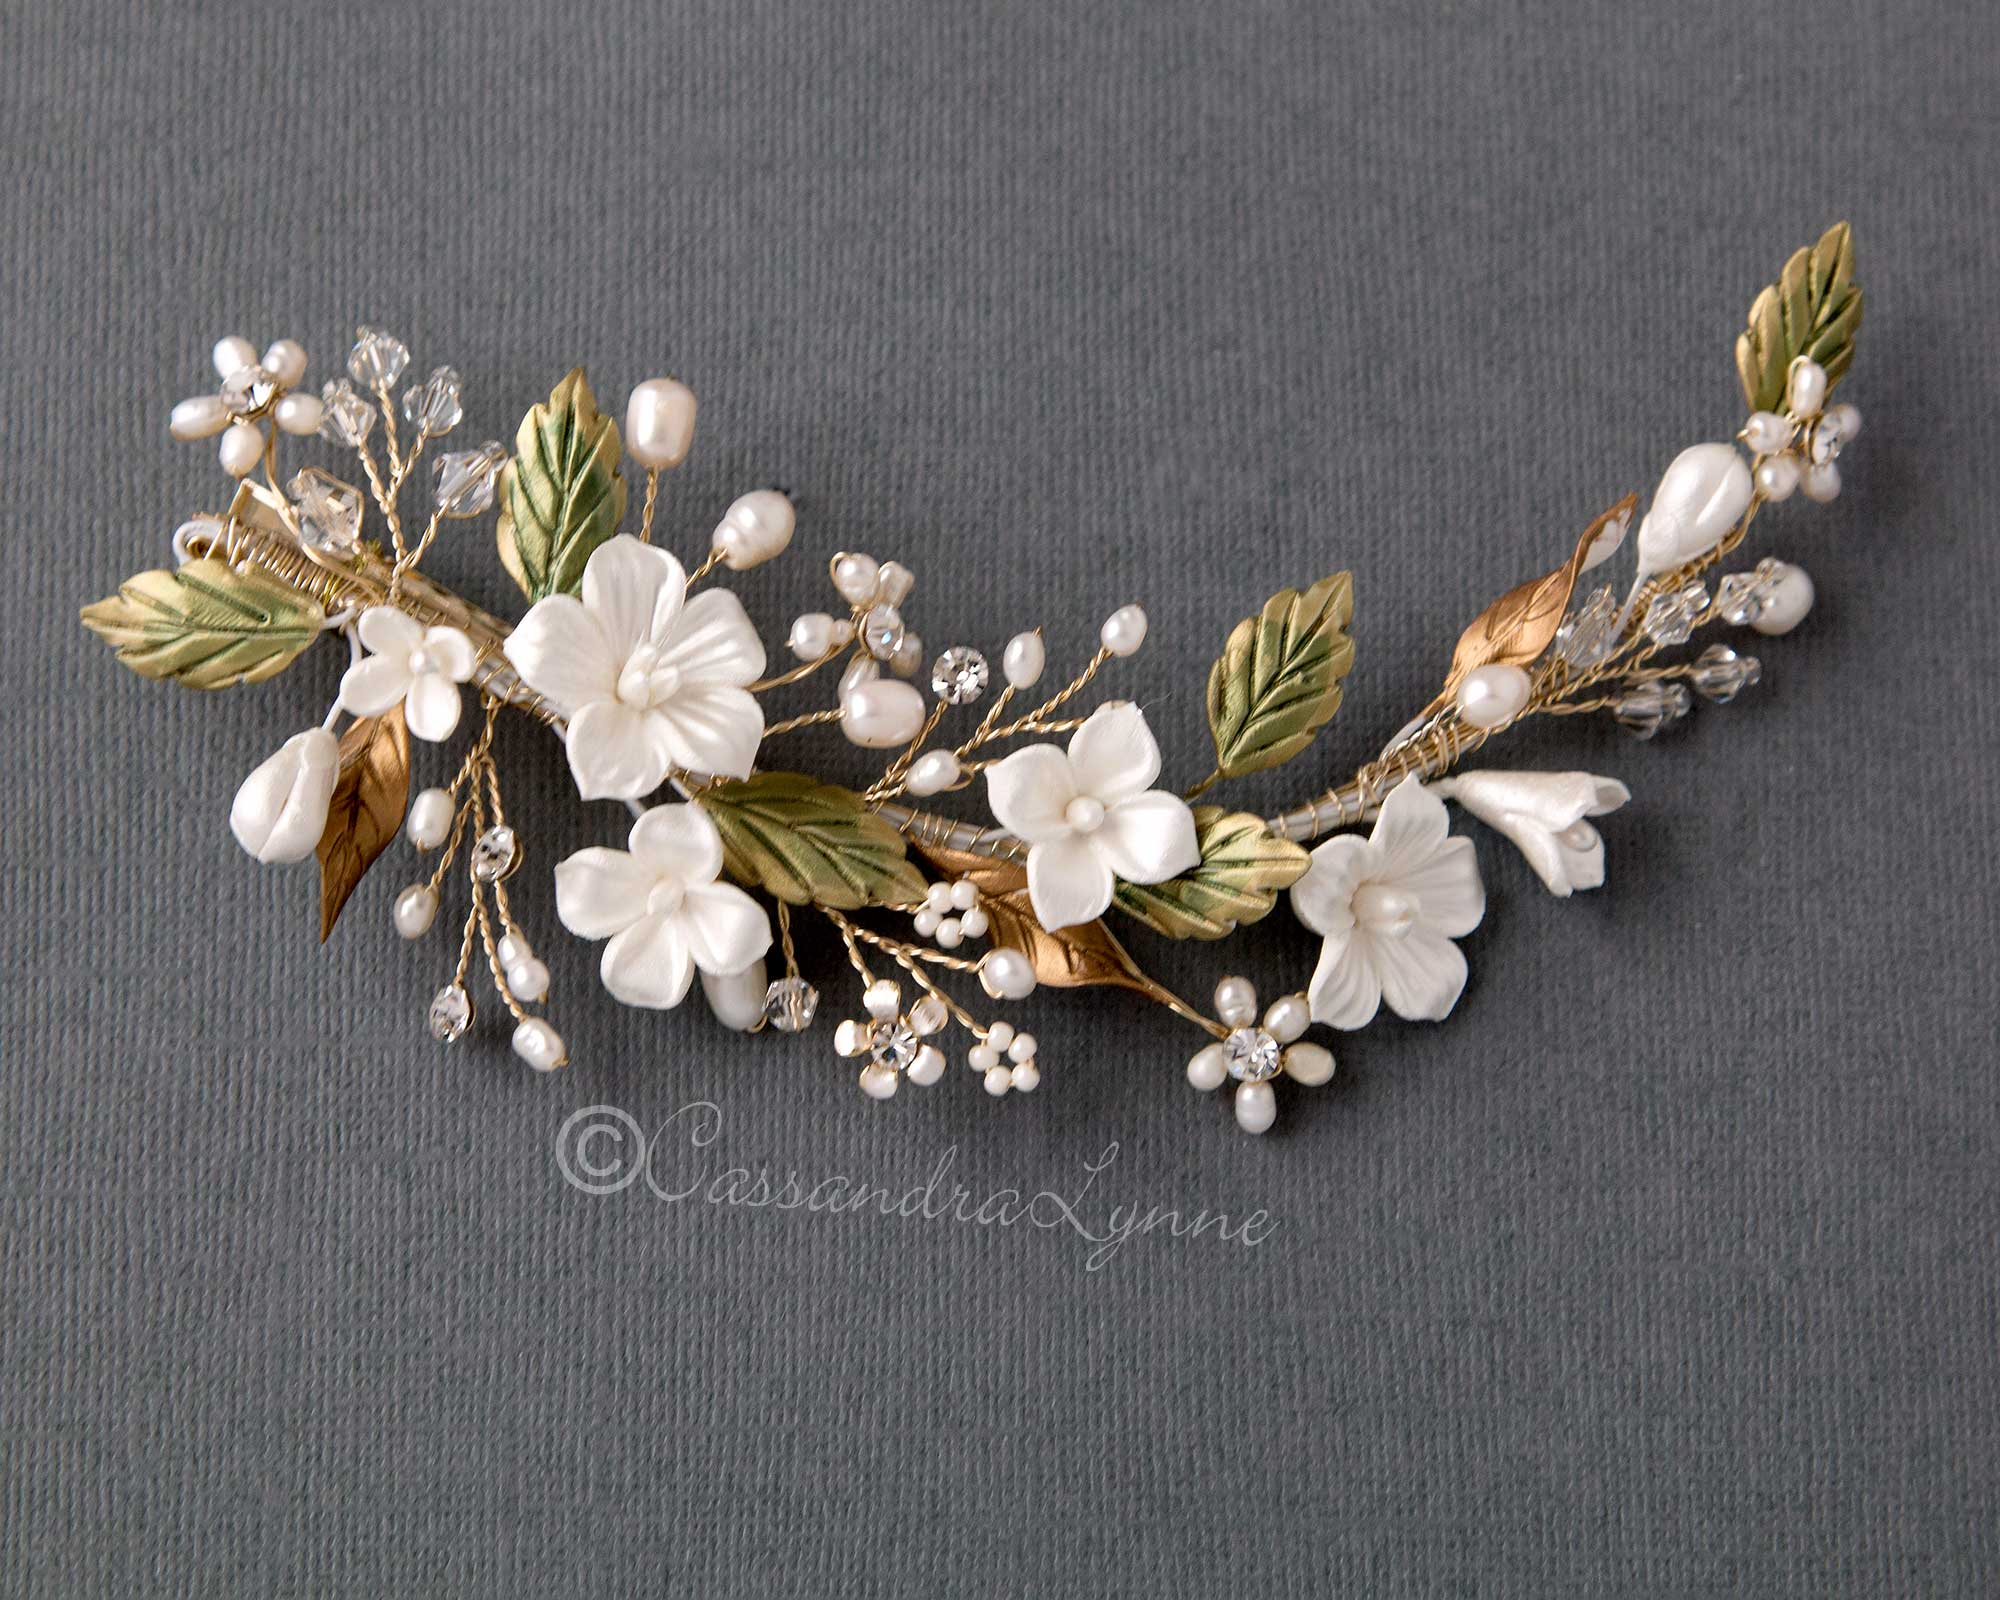 Bridal Clip with Green Leaves and Porcelain Flowers